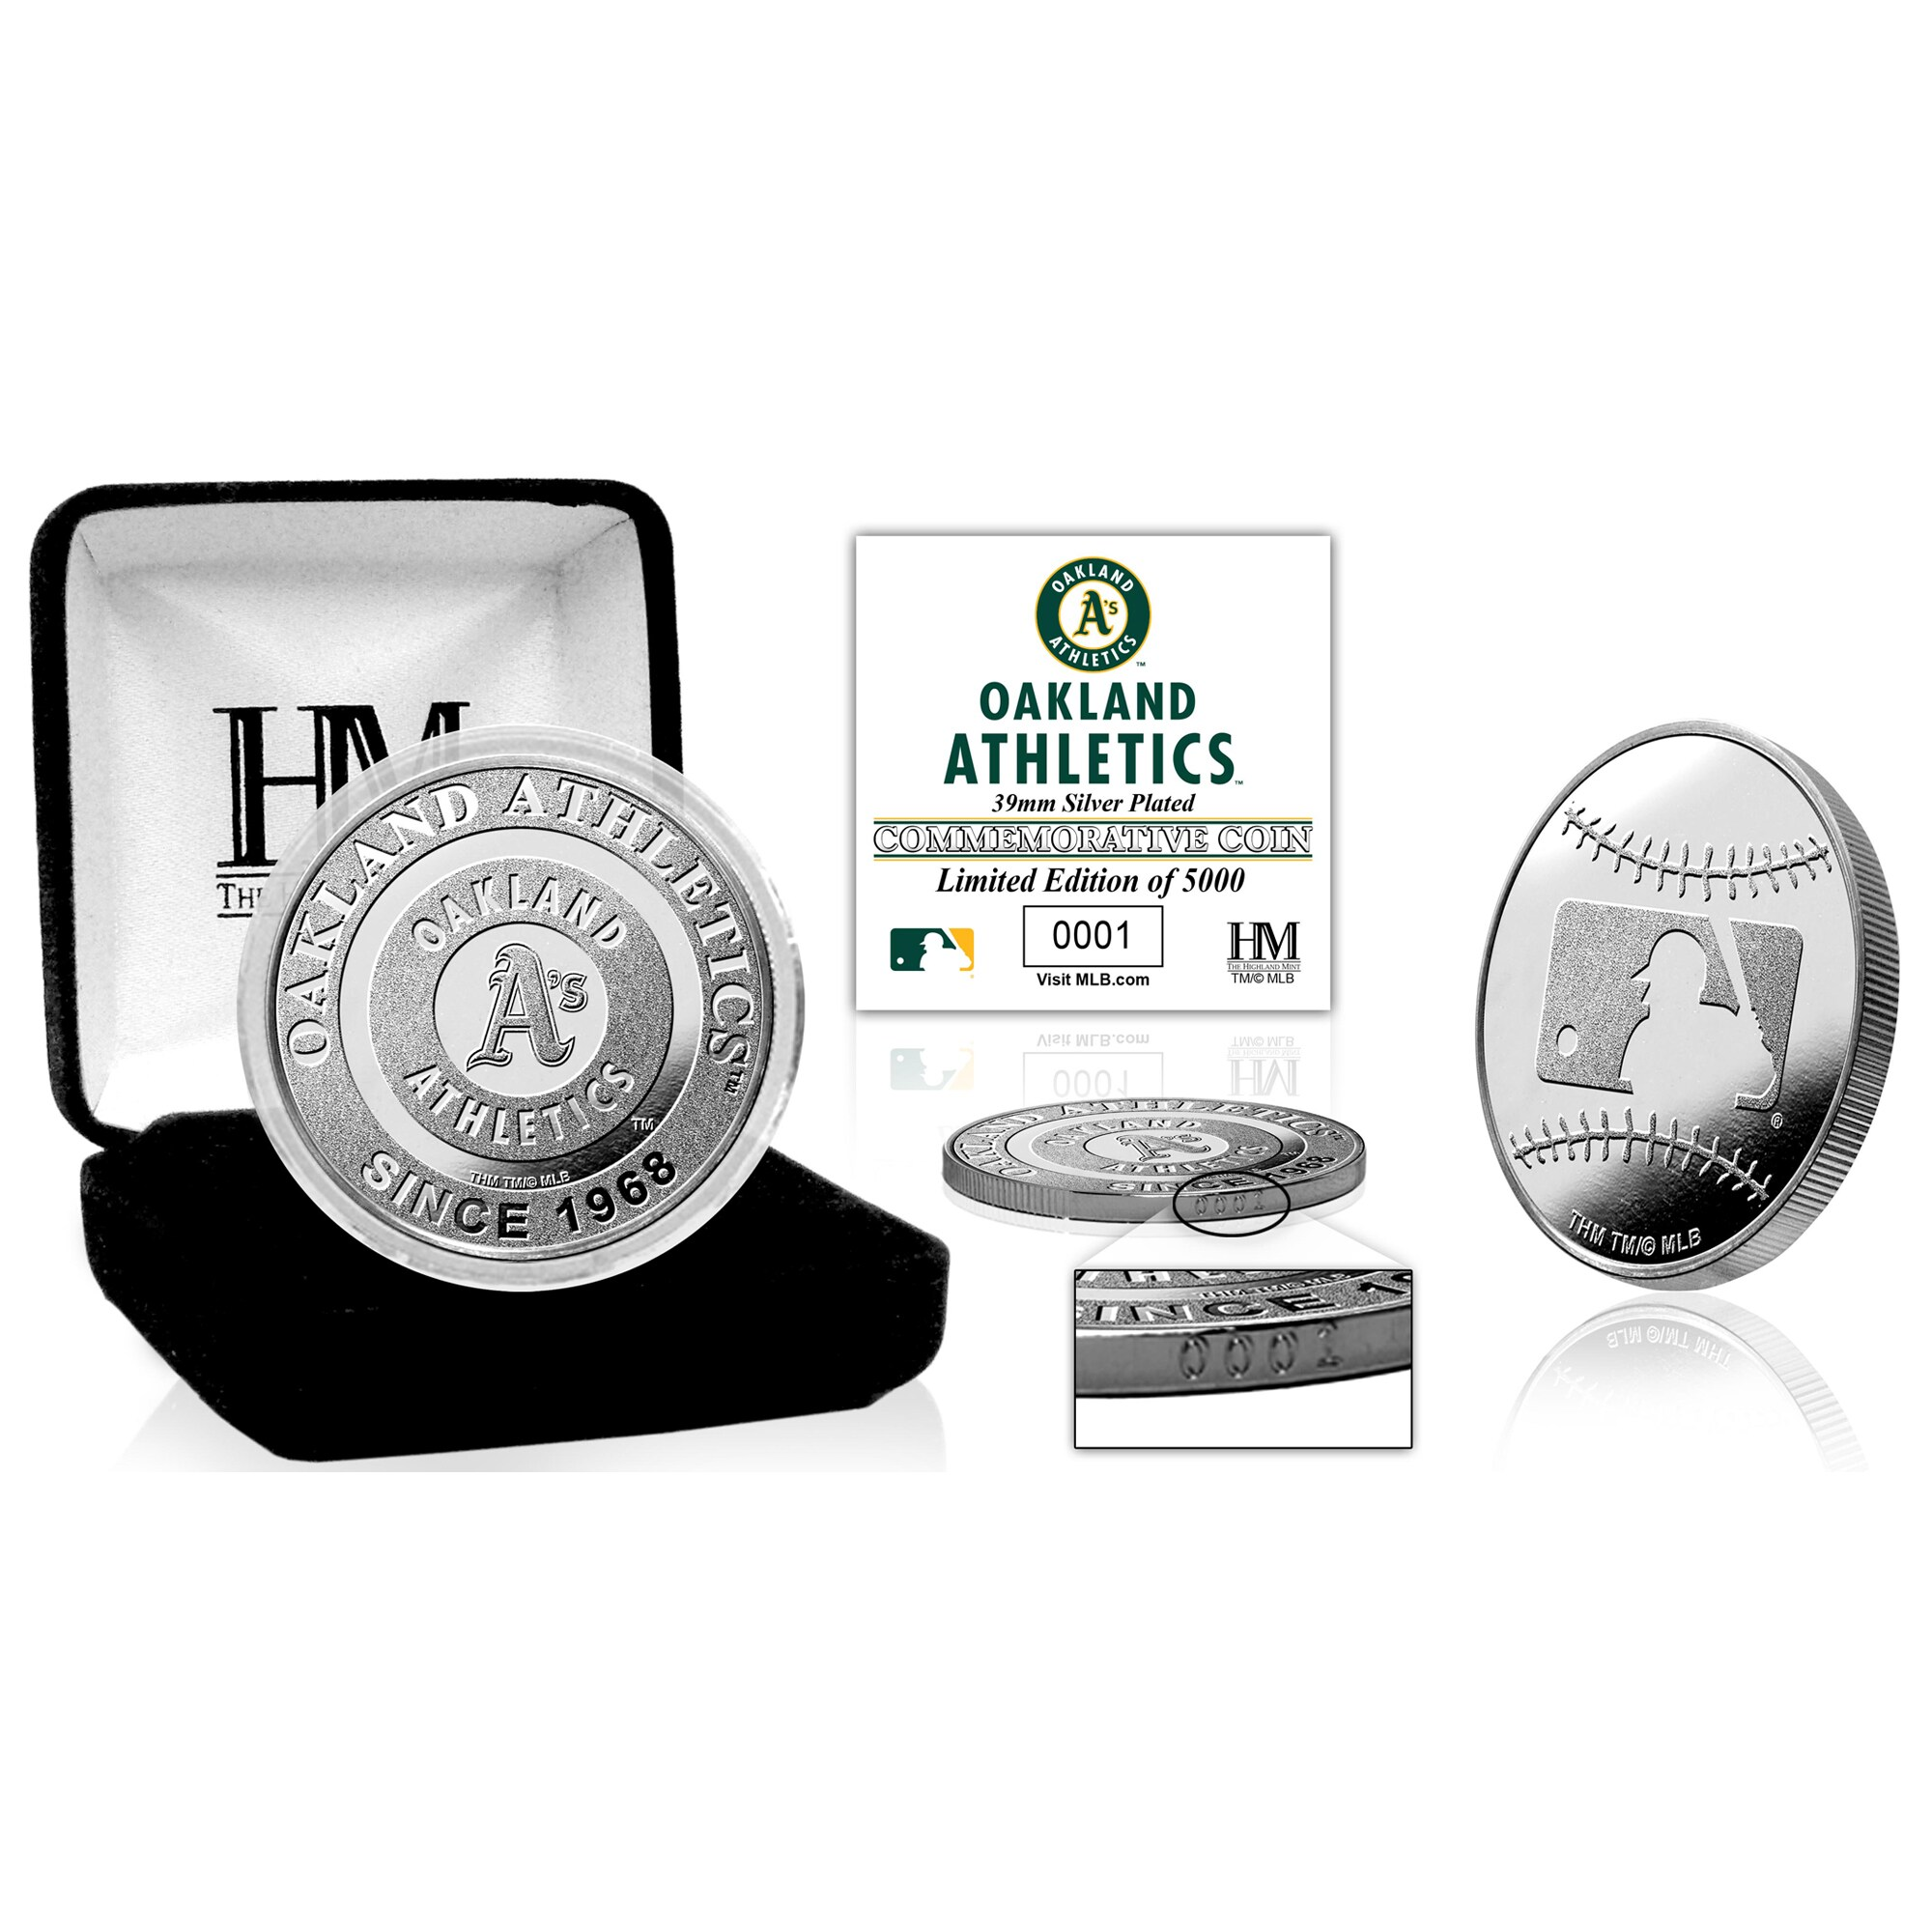 Oakland Athletics Highland Mint Silver Mint Coin